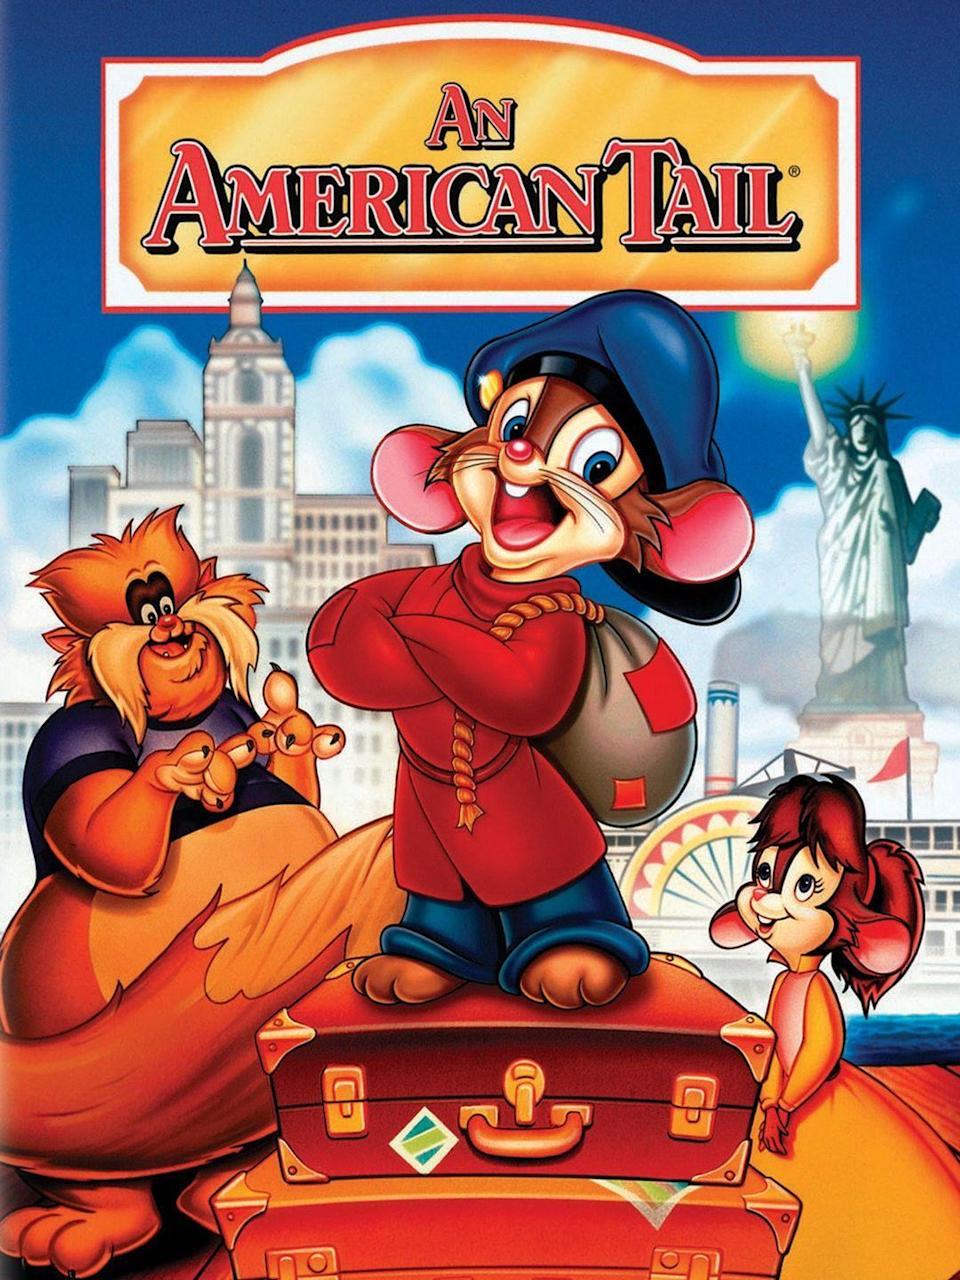 """<p>This heartwarming children's movie tells the """"tail"""" of Fievel, a young Russian mouse who gets separated from his parents on their journey to America. This movie is a great way to start a conversation with the kids about immigration and why people would want to come to America in search of a better life. <br><br><a class=""""link rapid-noclick-resp"""" href=""""https://www.amazon.com/American-Tail-Christopher-Plummer/dp/B00IRX3CZM/ref=sr_1_1?tag=syn-yahoo-20&ascsubtag=%5Bartid%7C10070.g.36156094%5Bsrc%7Cyahoo-us"""" rel=""""nofollow noopener"""" target=""""_blank"""" data-ylk=""""slk:STREAM NOW"""">STREAM NOW</a> </p>"""